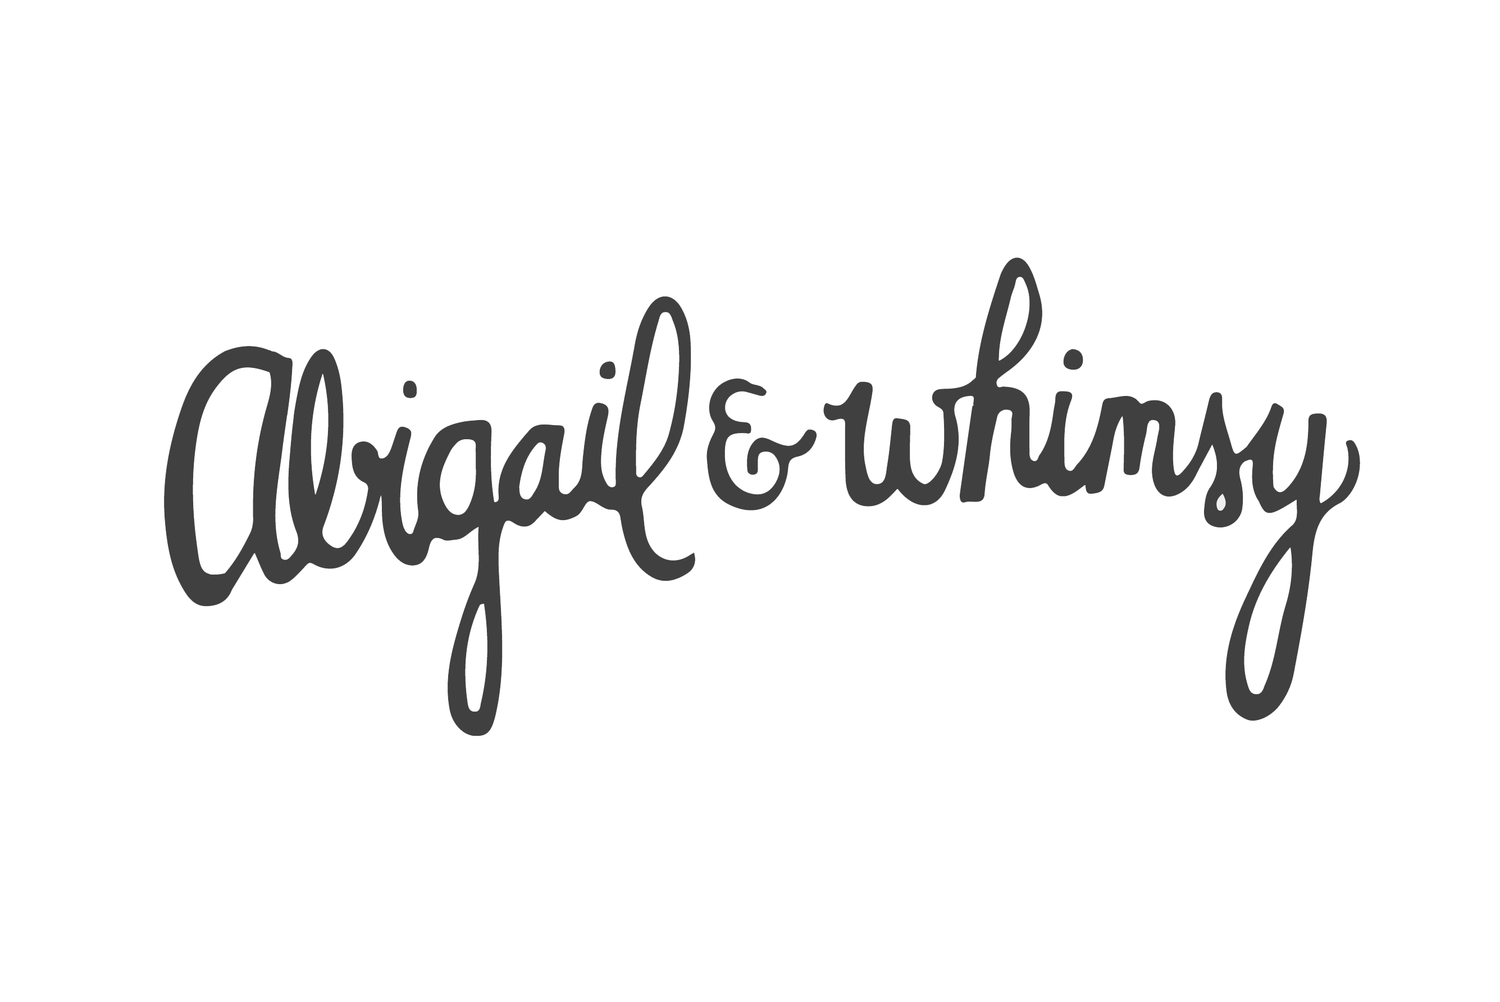 Abigail and Whimsy